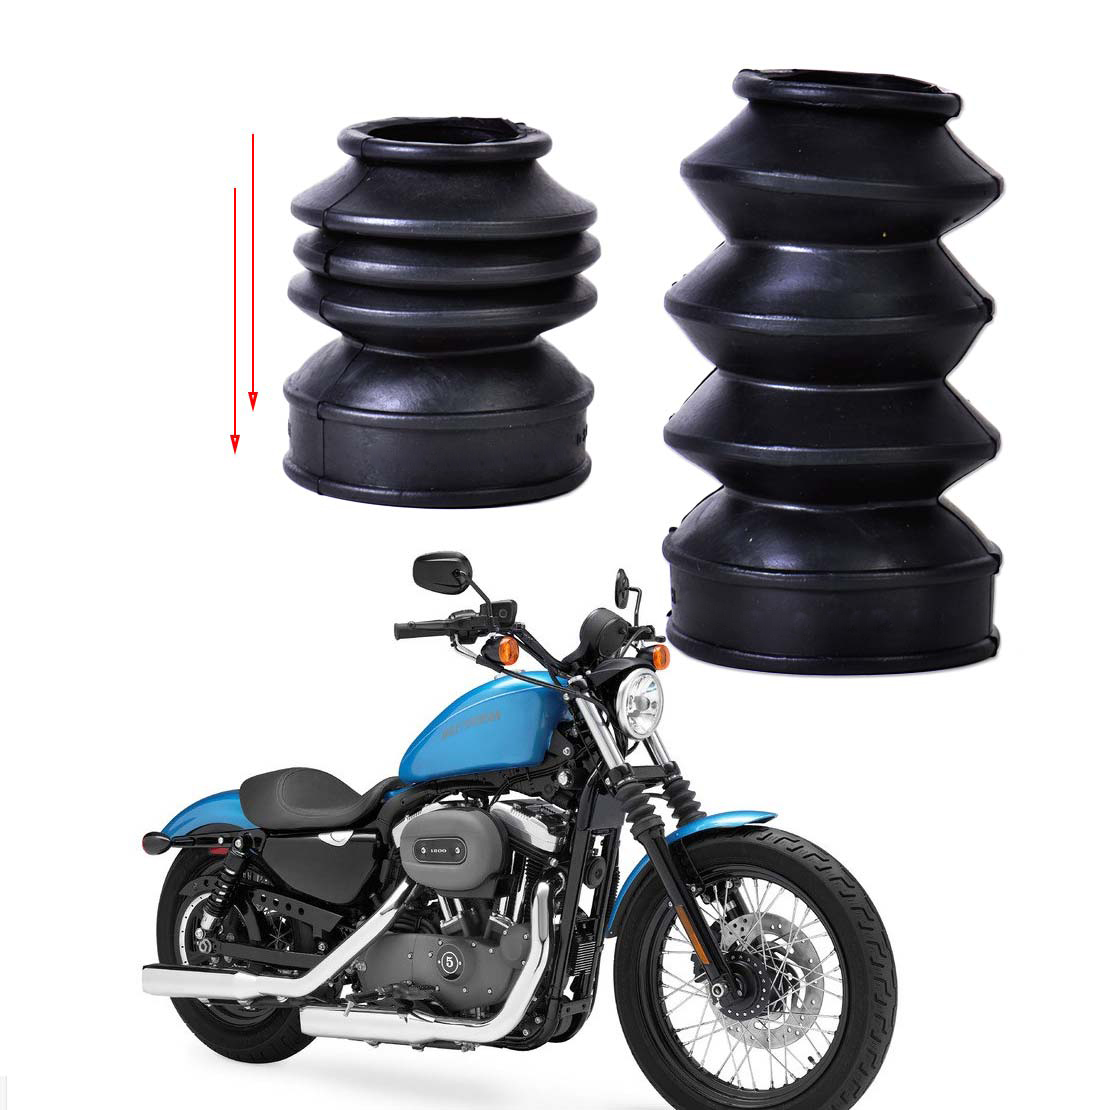 DWCX Pair Motorcycle Front Rubber Fork Dirt Cover Gaiter Gator Boot Cap Shock For Harley Sportster Dyna FX XL883 1200 N C L V 48 camouflage canvas motorcycle saddle bag bike luggage bags for harley sportster trouing dyna xl 883 1200 yamaha kawasaki mk004